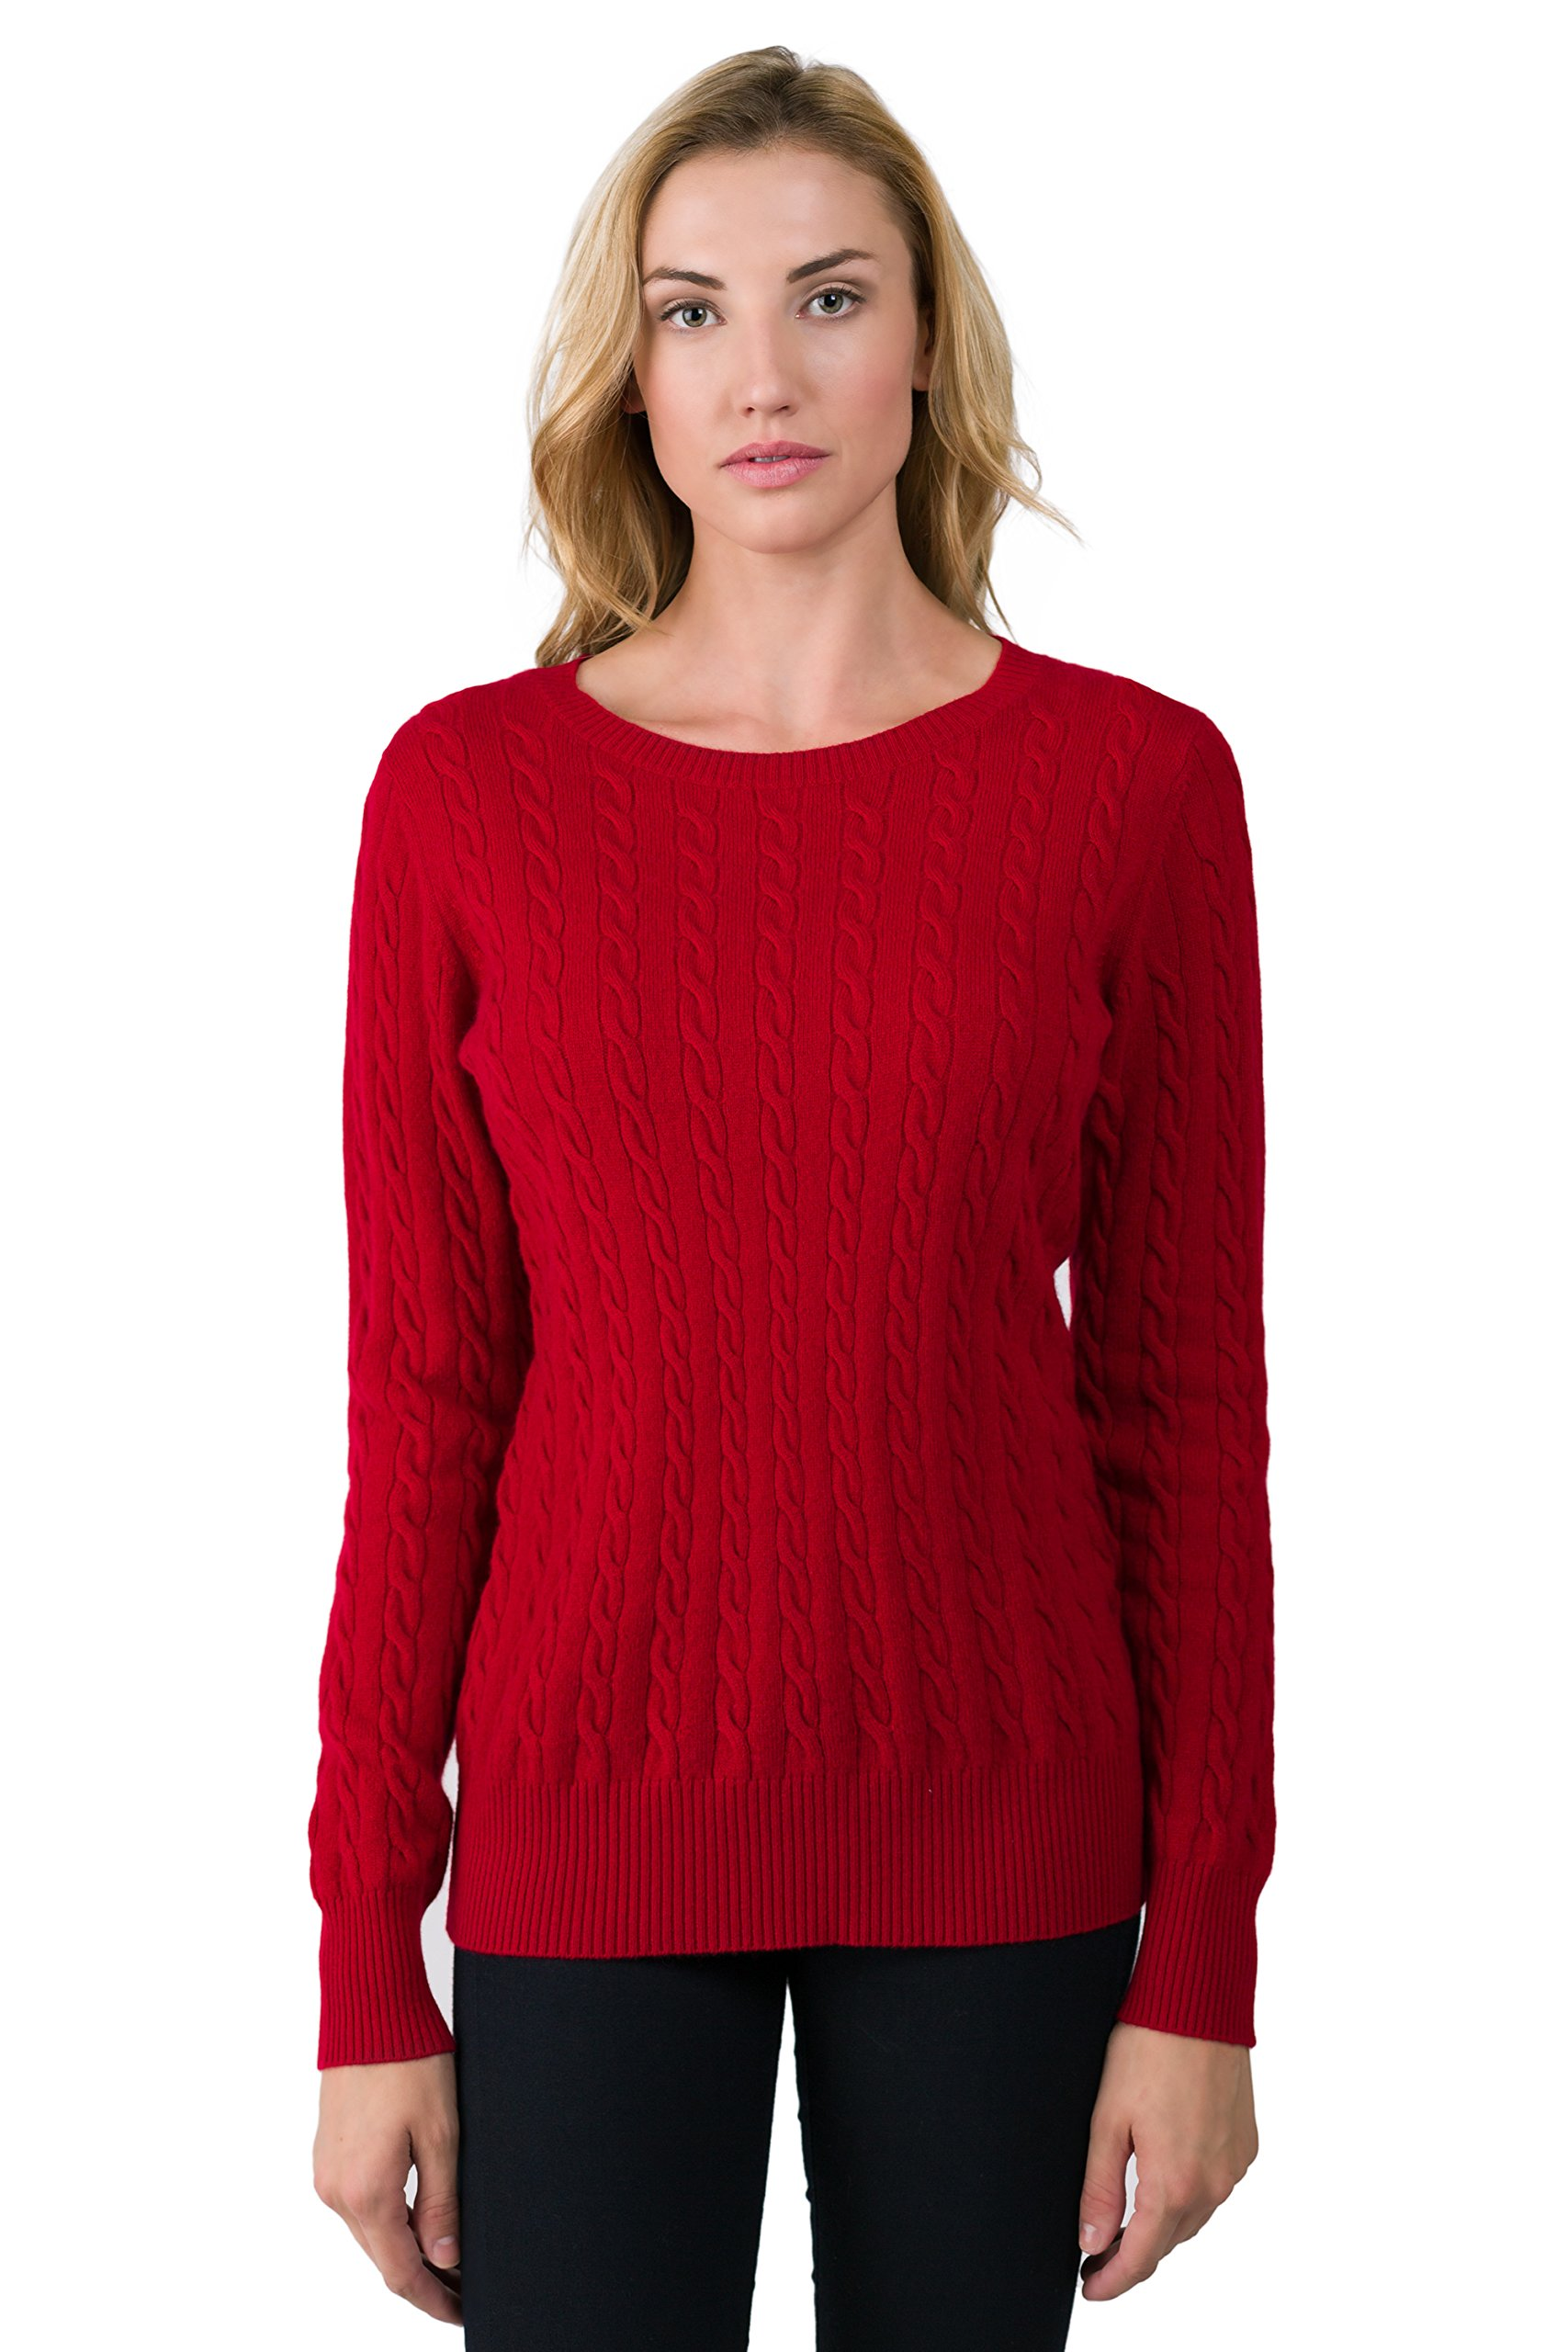 JENNIE LIU J Cashmere Women's 100% Cashmere Long Sleeve Pullover Cable Crewneck Sweater Red Large